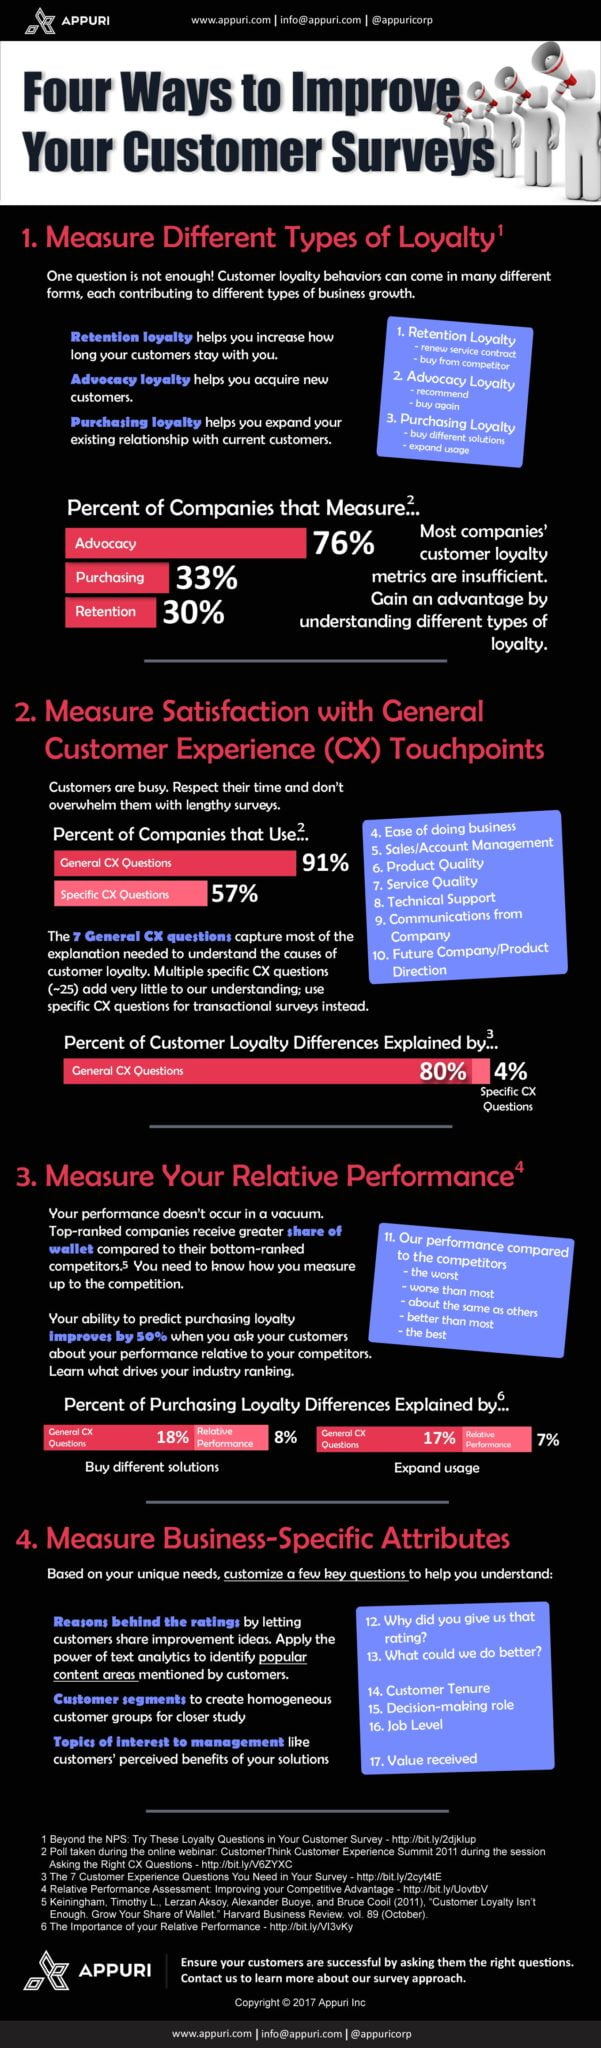 How to improve your customer surveys [Infographic]